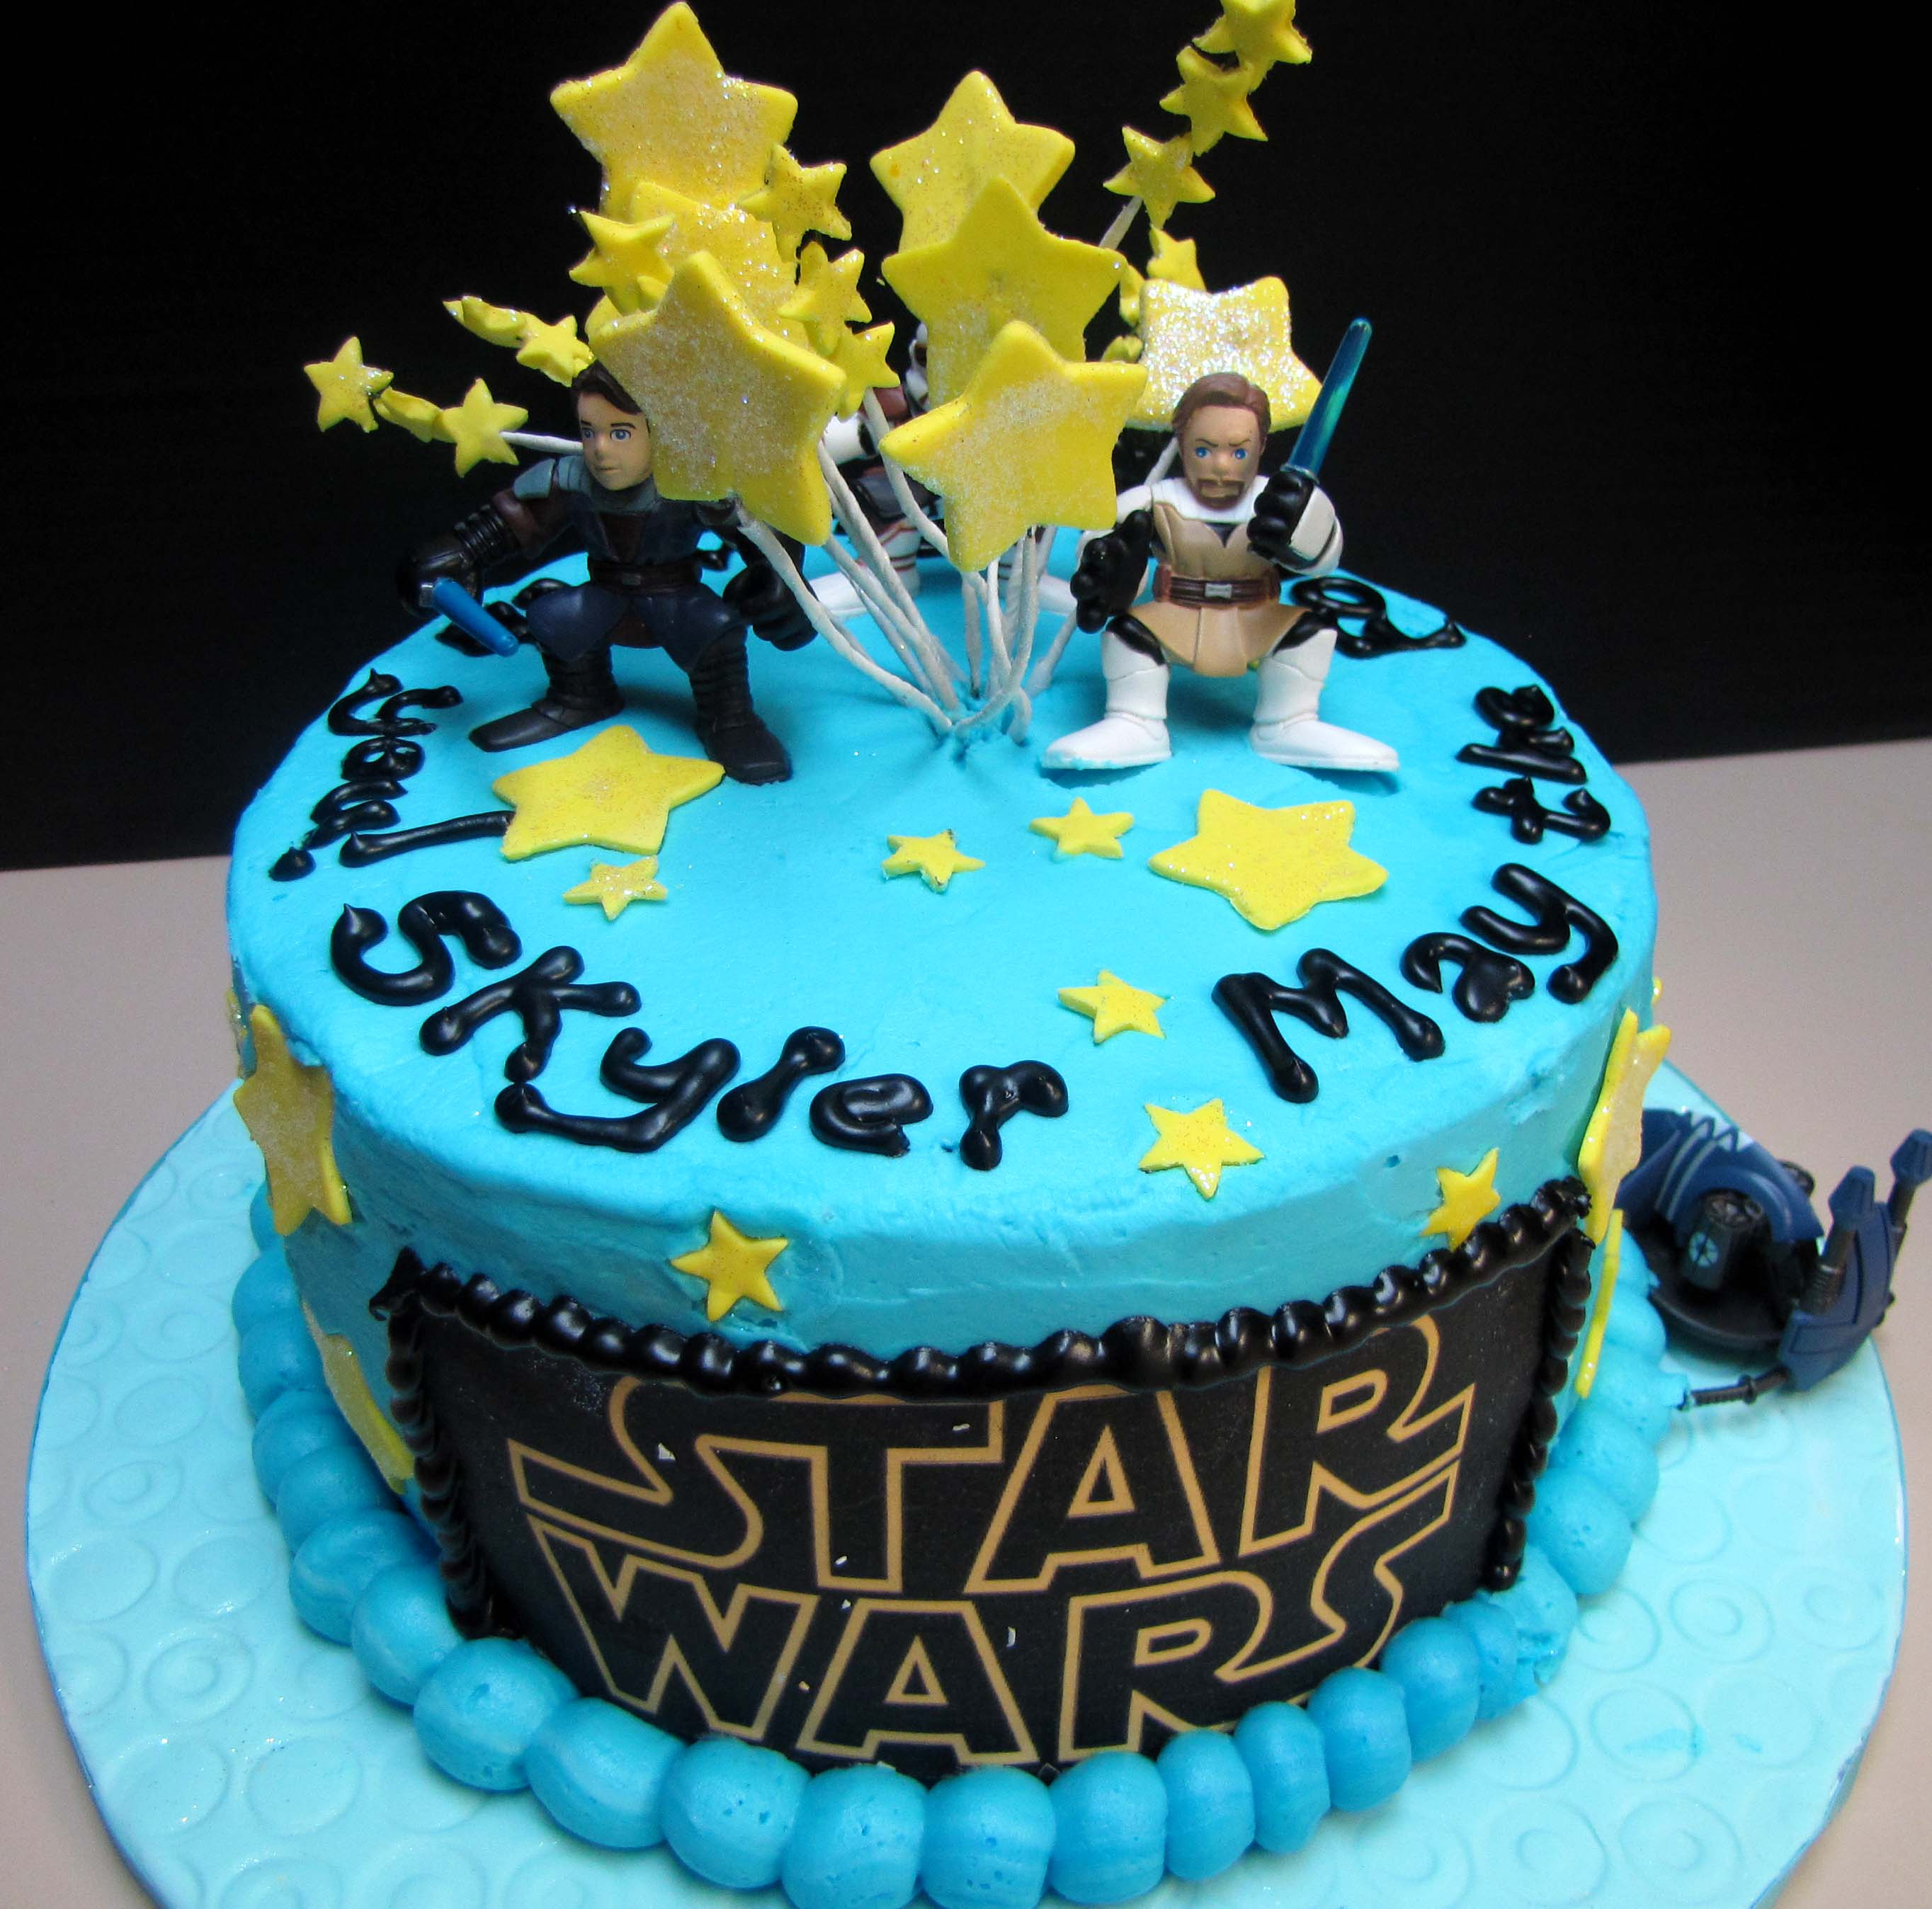 Magnificent Star War Happy Birthday Cake 2728 x 2696 · 463 kB · jpeg